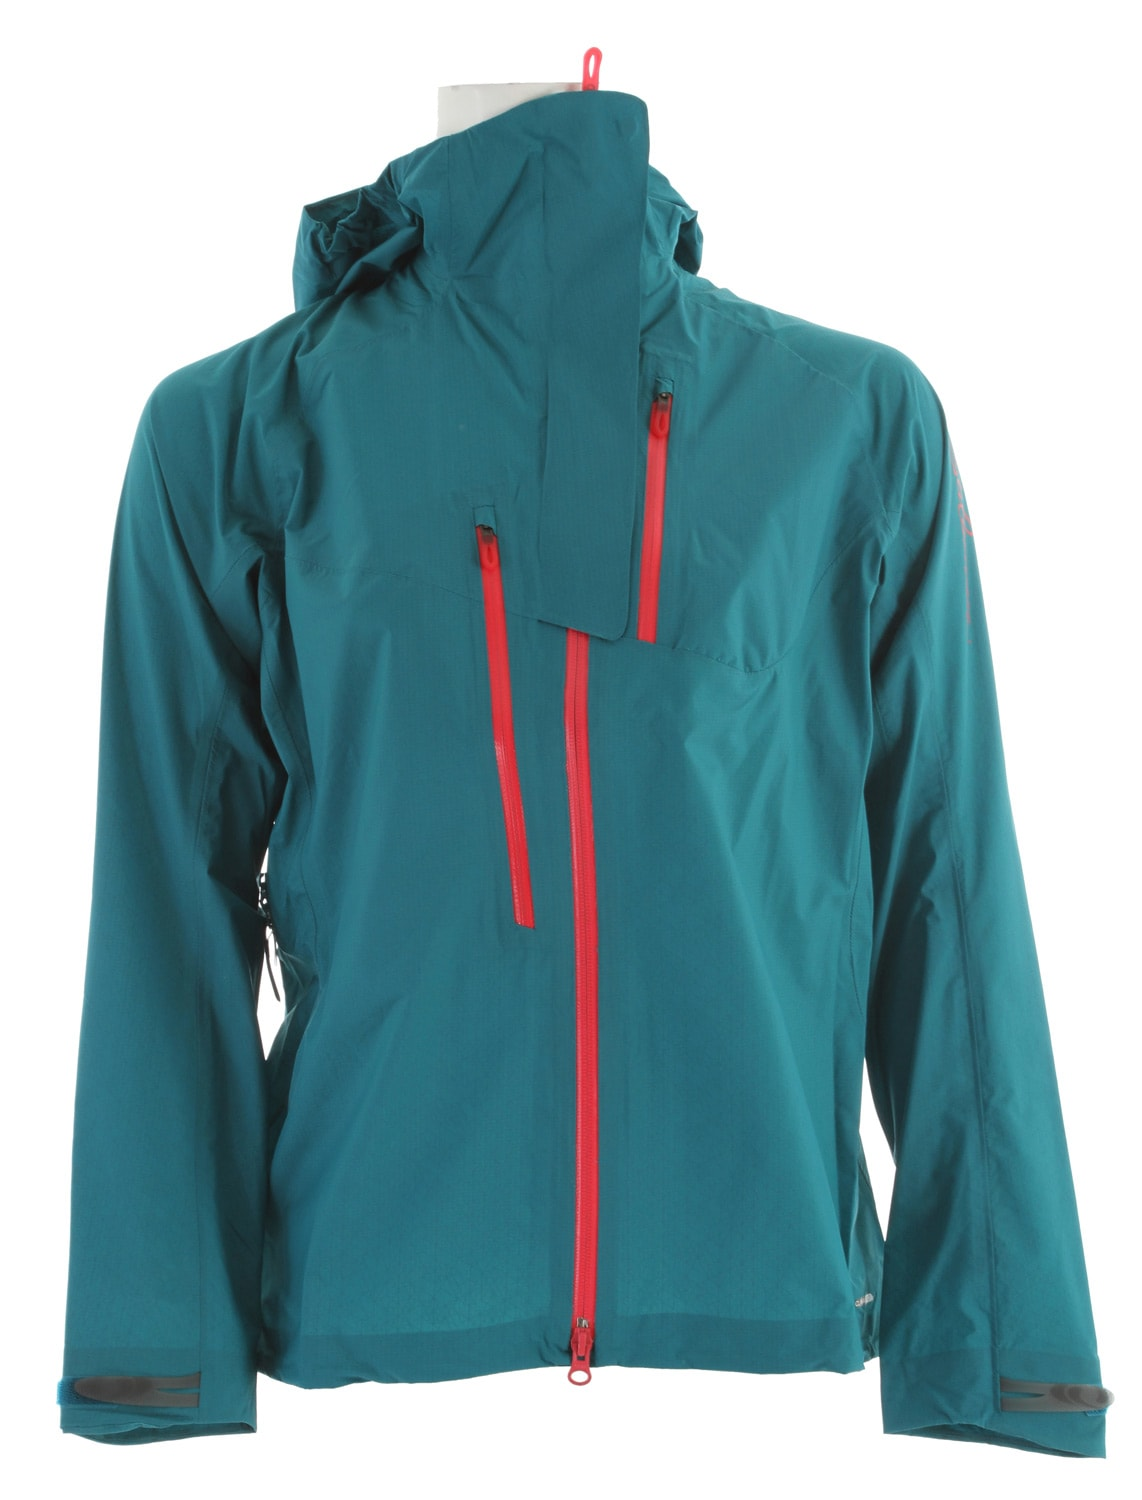 on sale salomon minim shell ski jacket womens up to 60